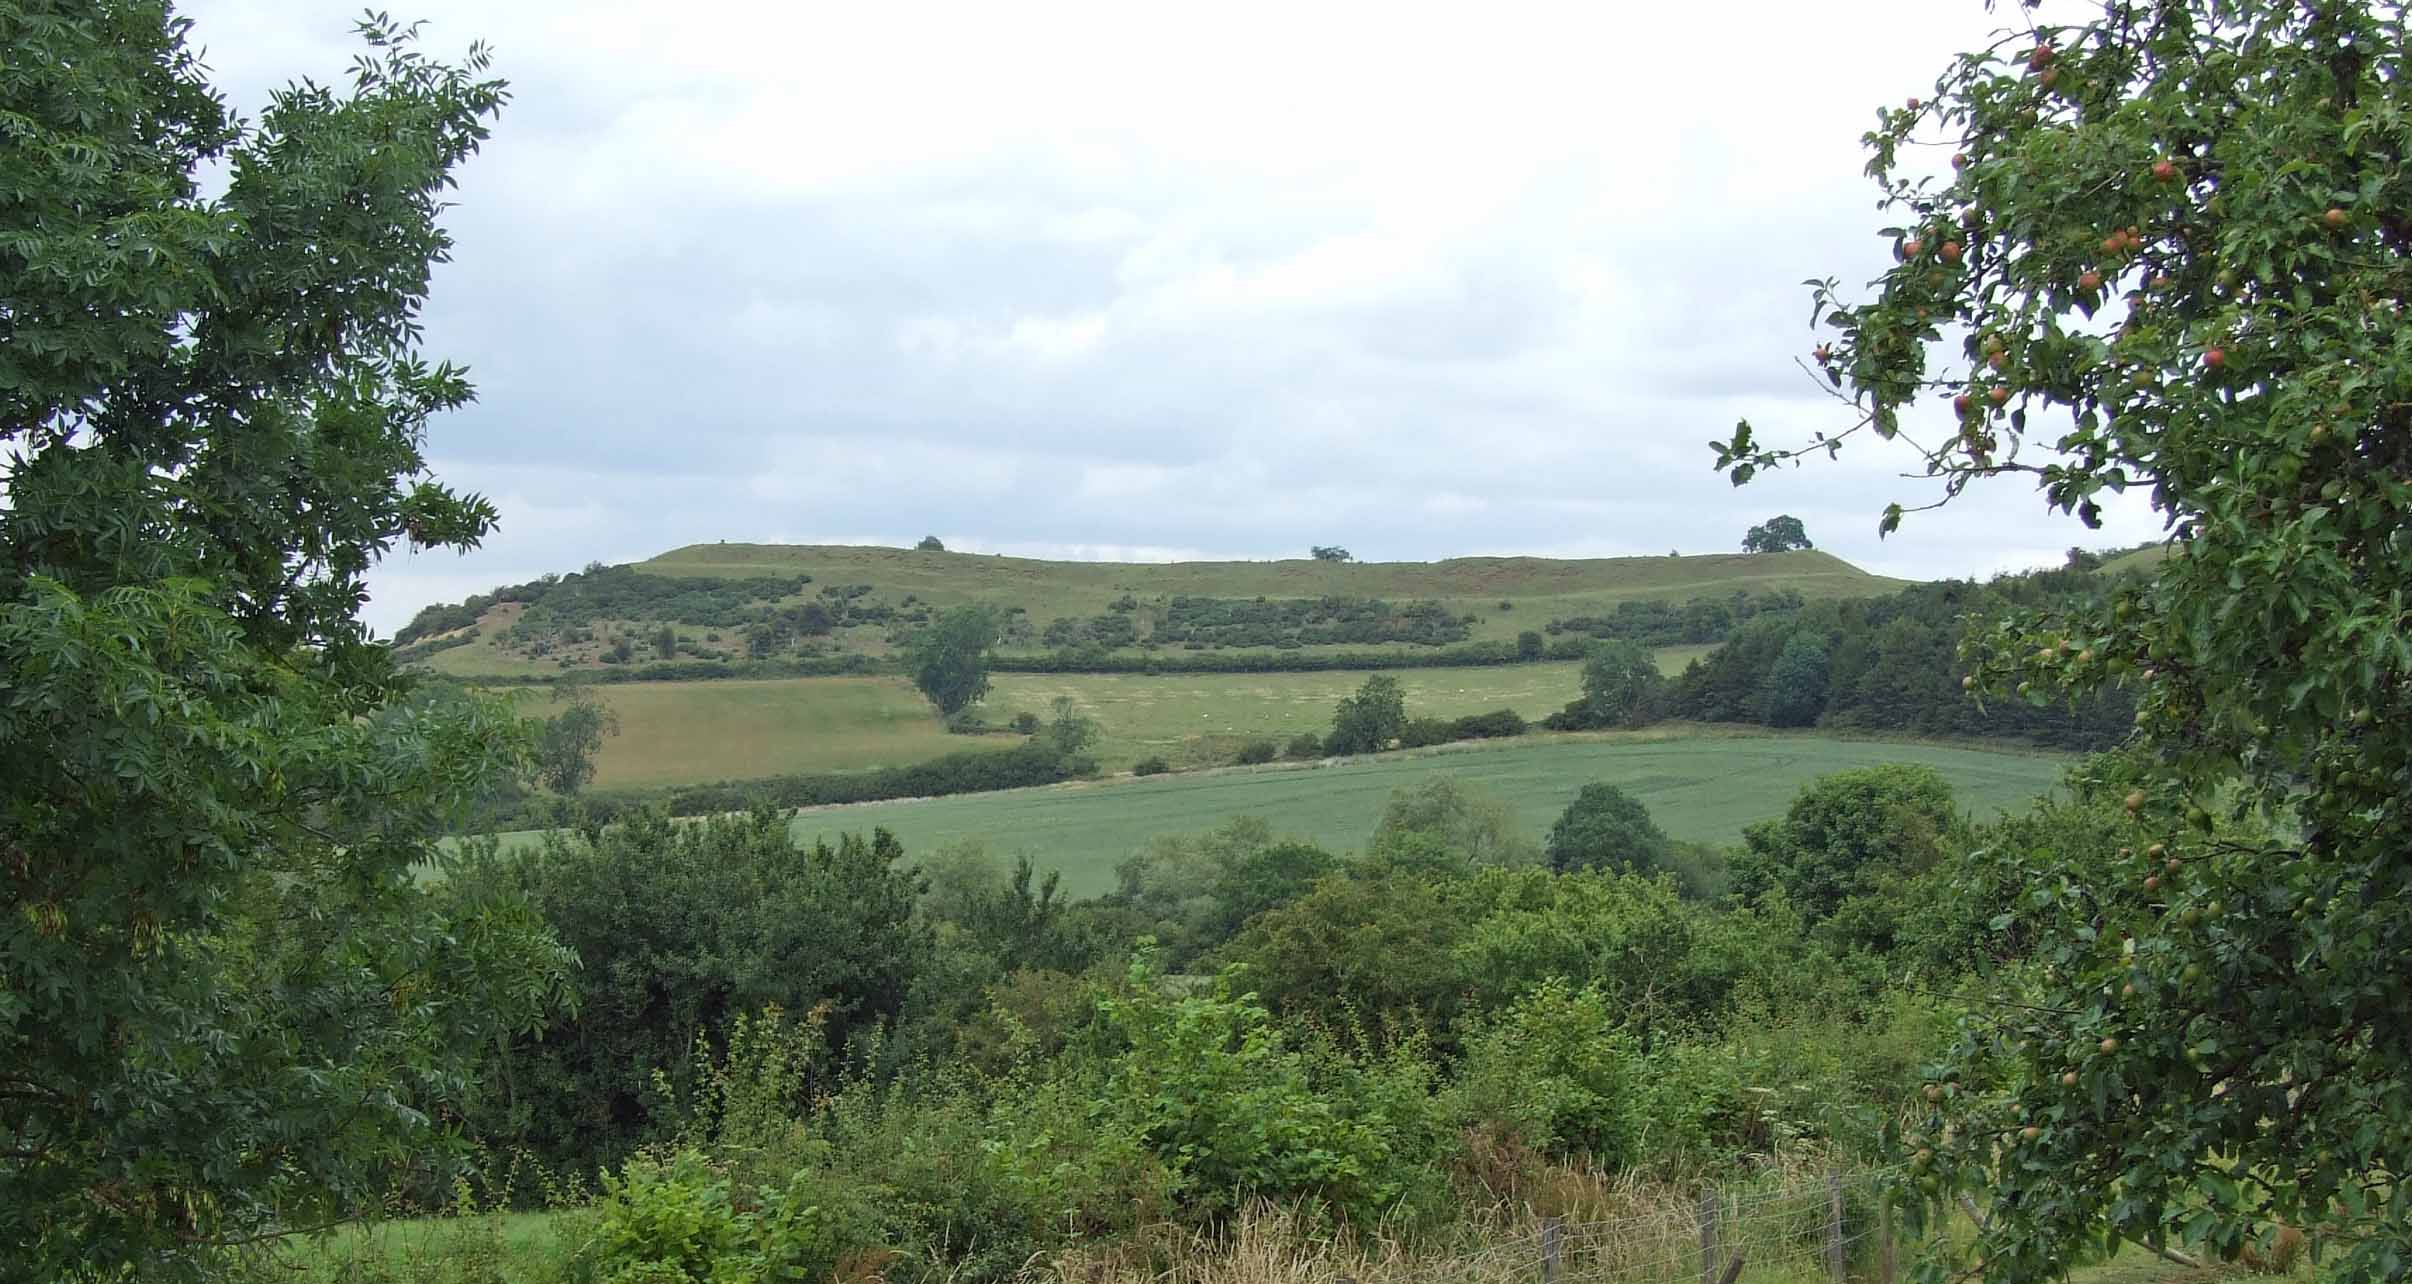 A photograph of a distant hill fort in a green landscape, seen through the gap between two trees. The edges and flat top of the fort are clearly visible.